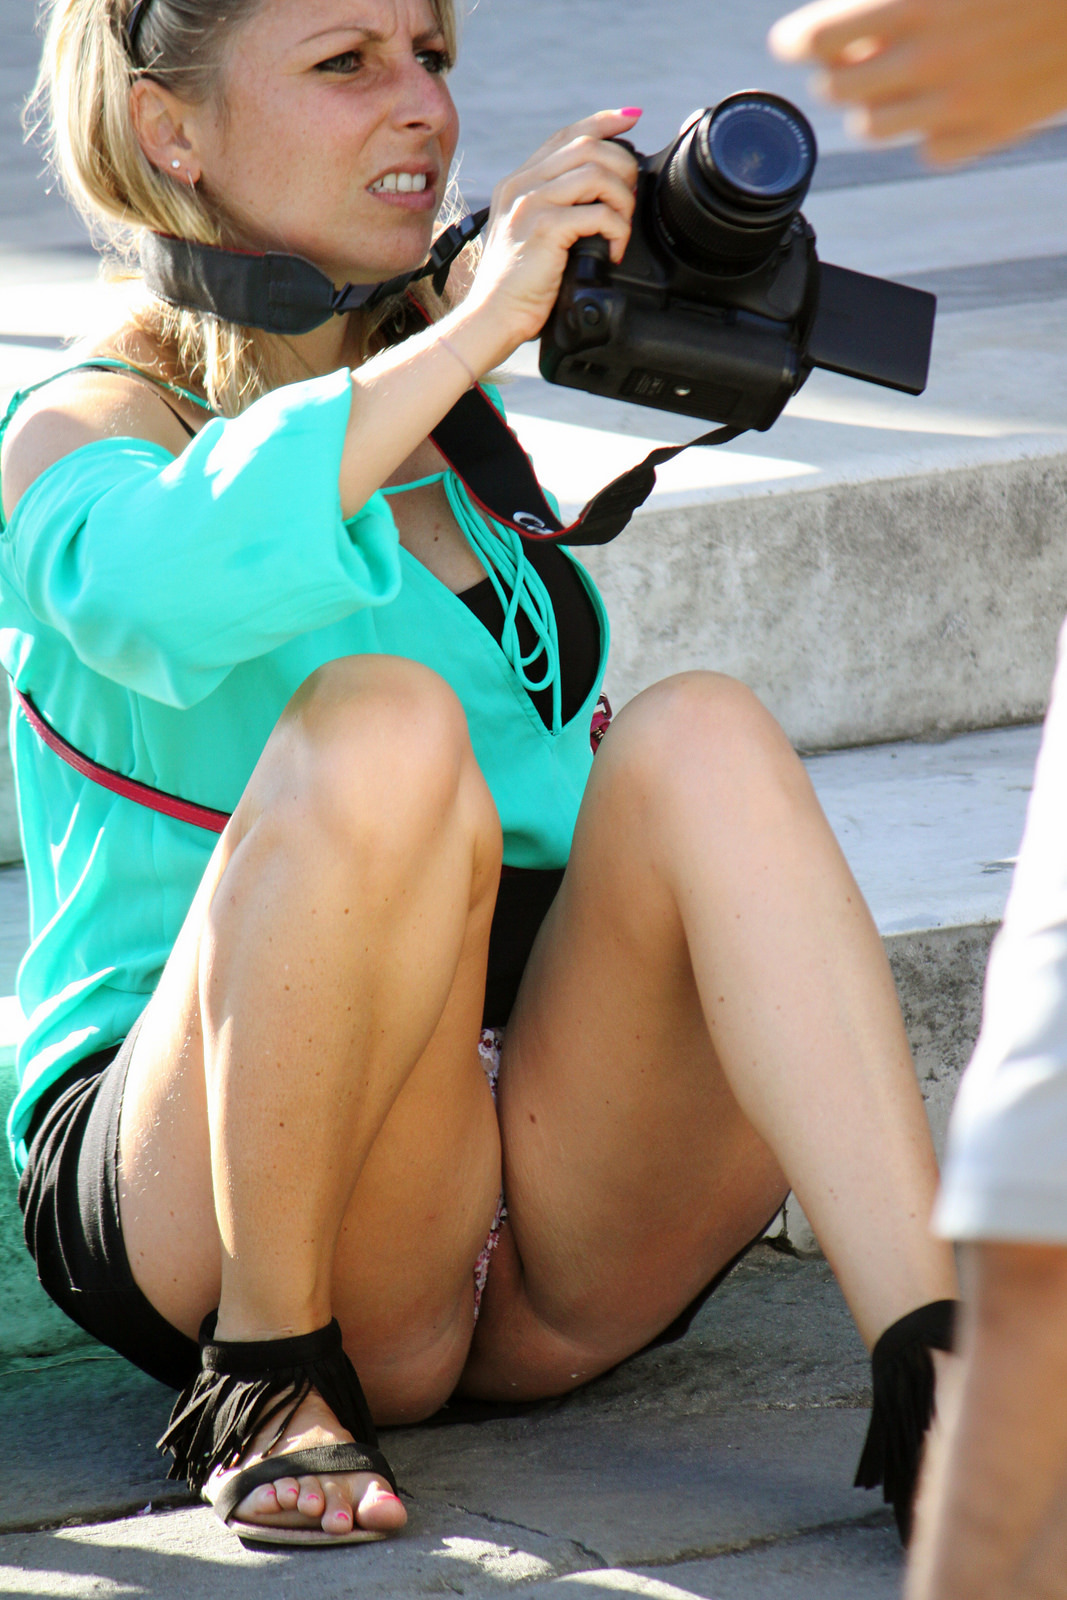 Upskirt Candid picture